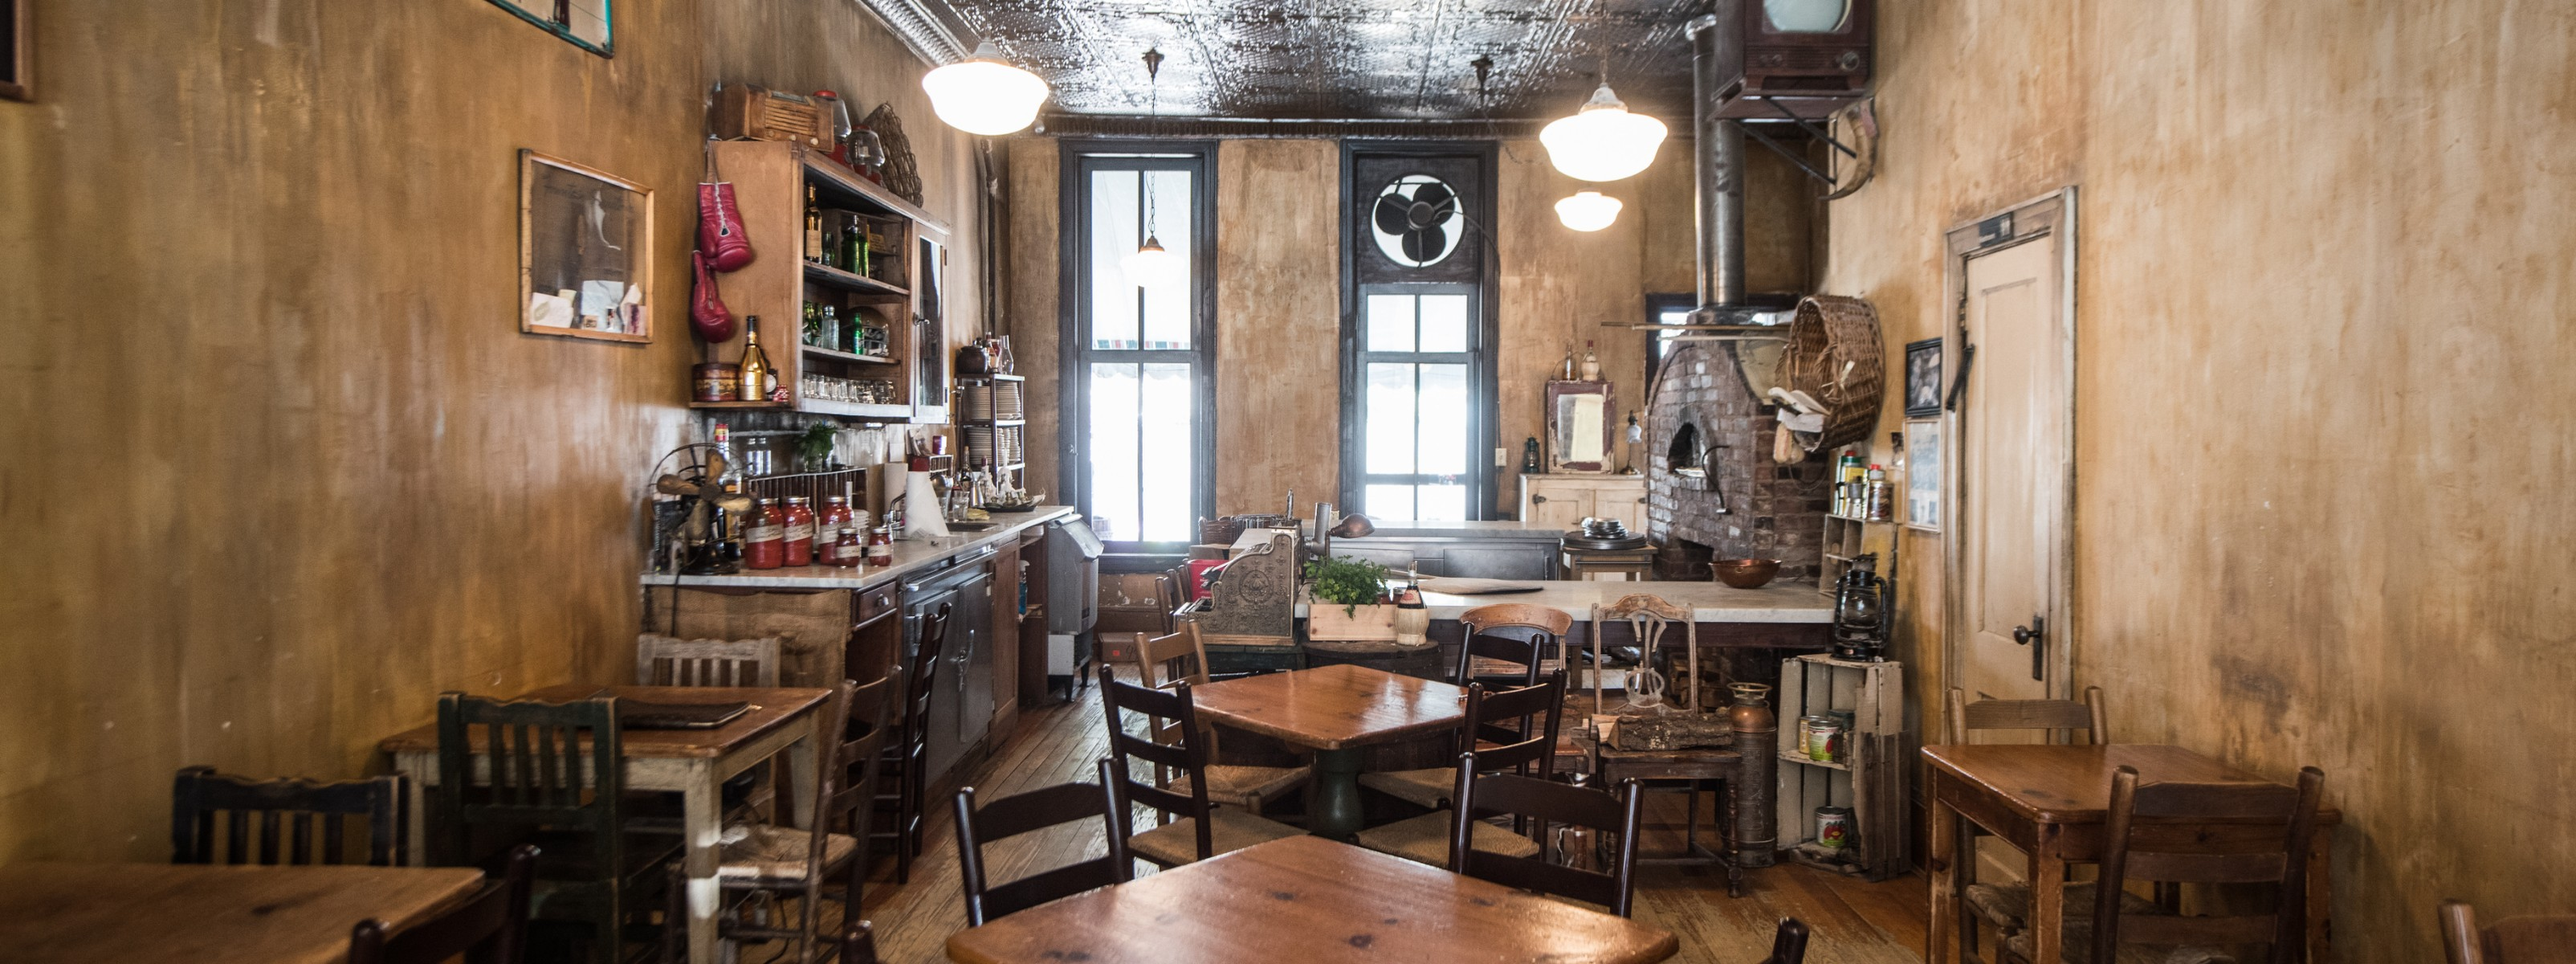 Where To BYOB In NYC - New York - The Infatuation